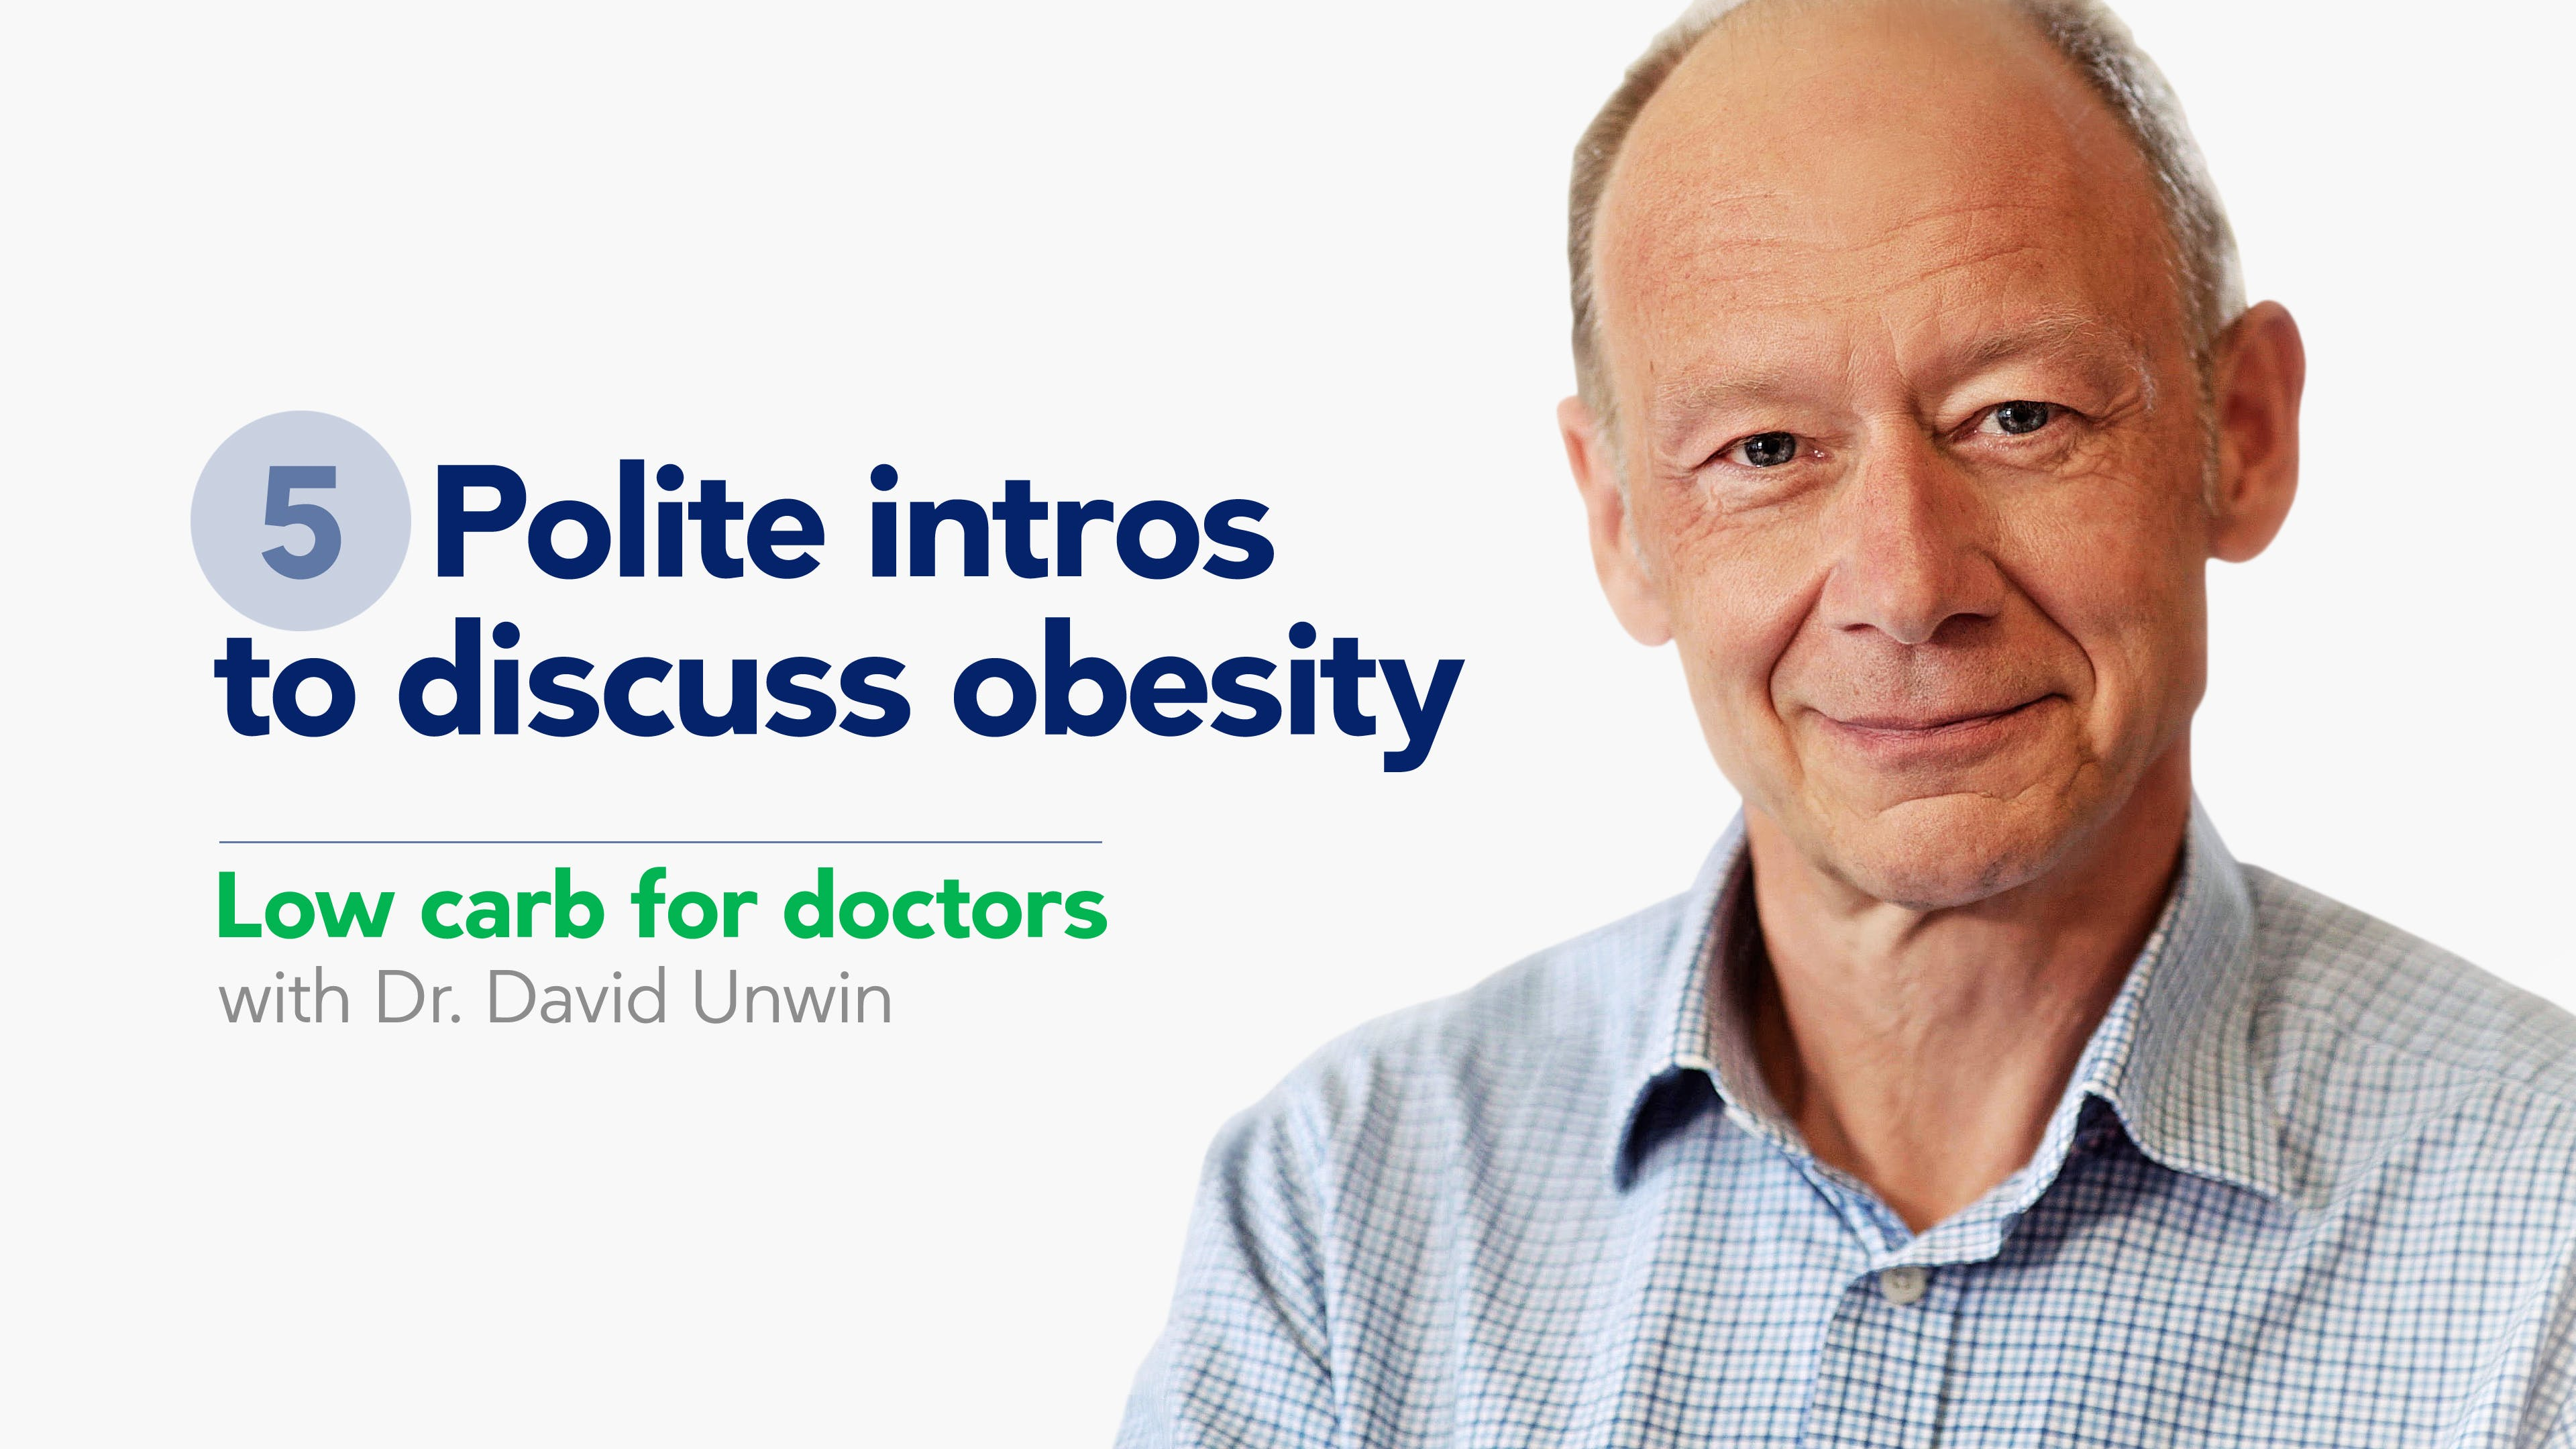 Low carb for doctors: Polite intros to discuss obesity